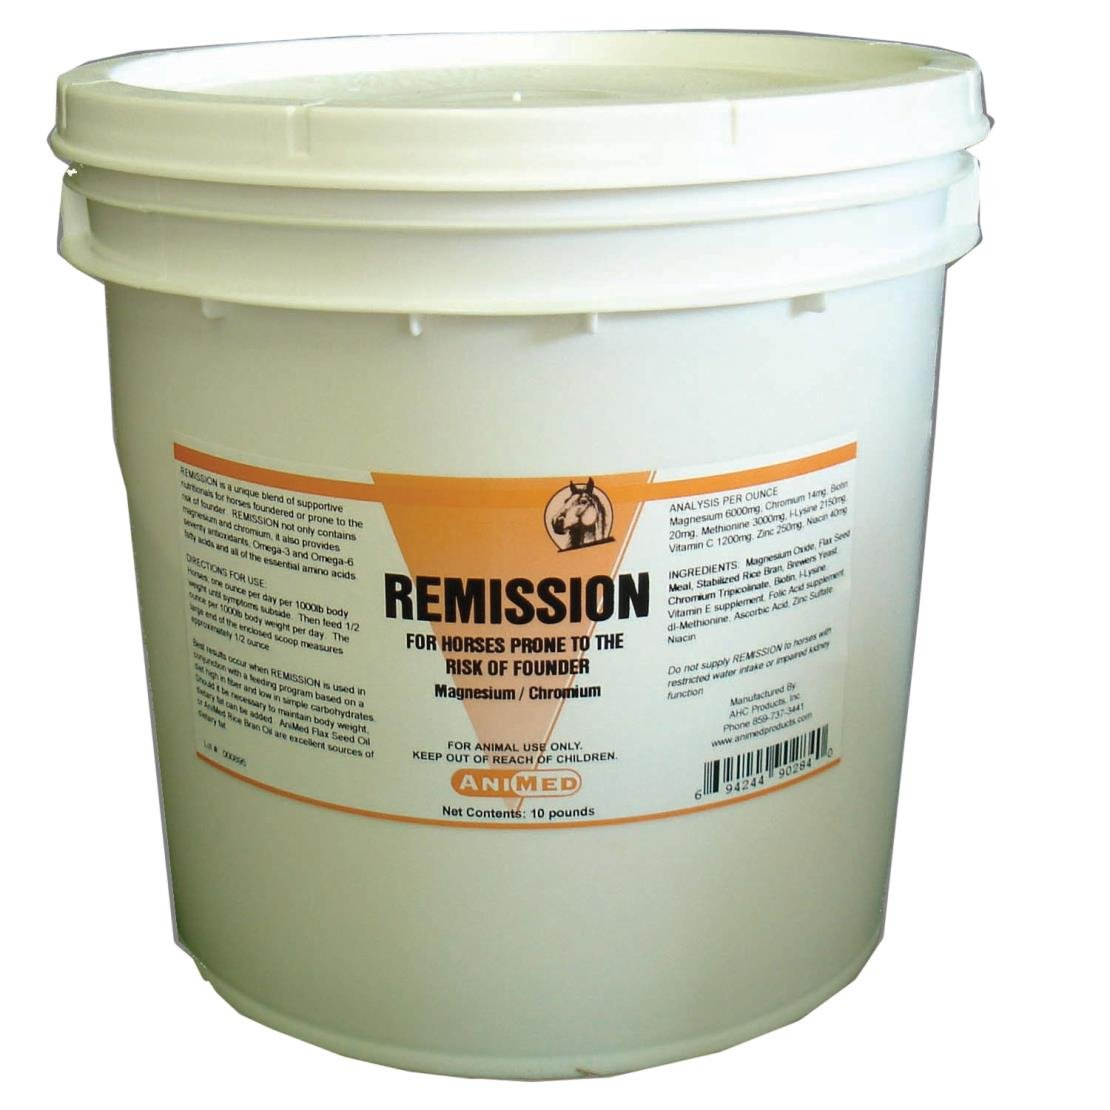 DPD Remission Founder Treatment for Horses - 10 Pound